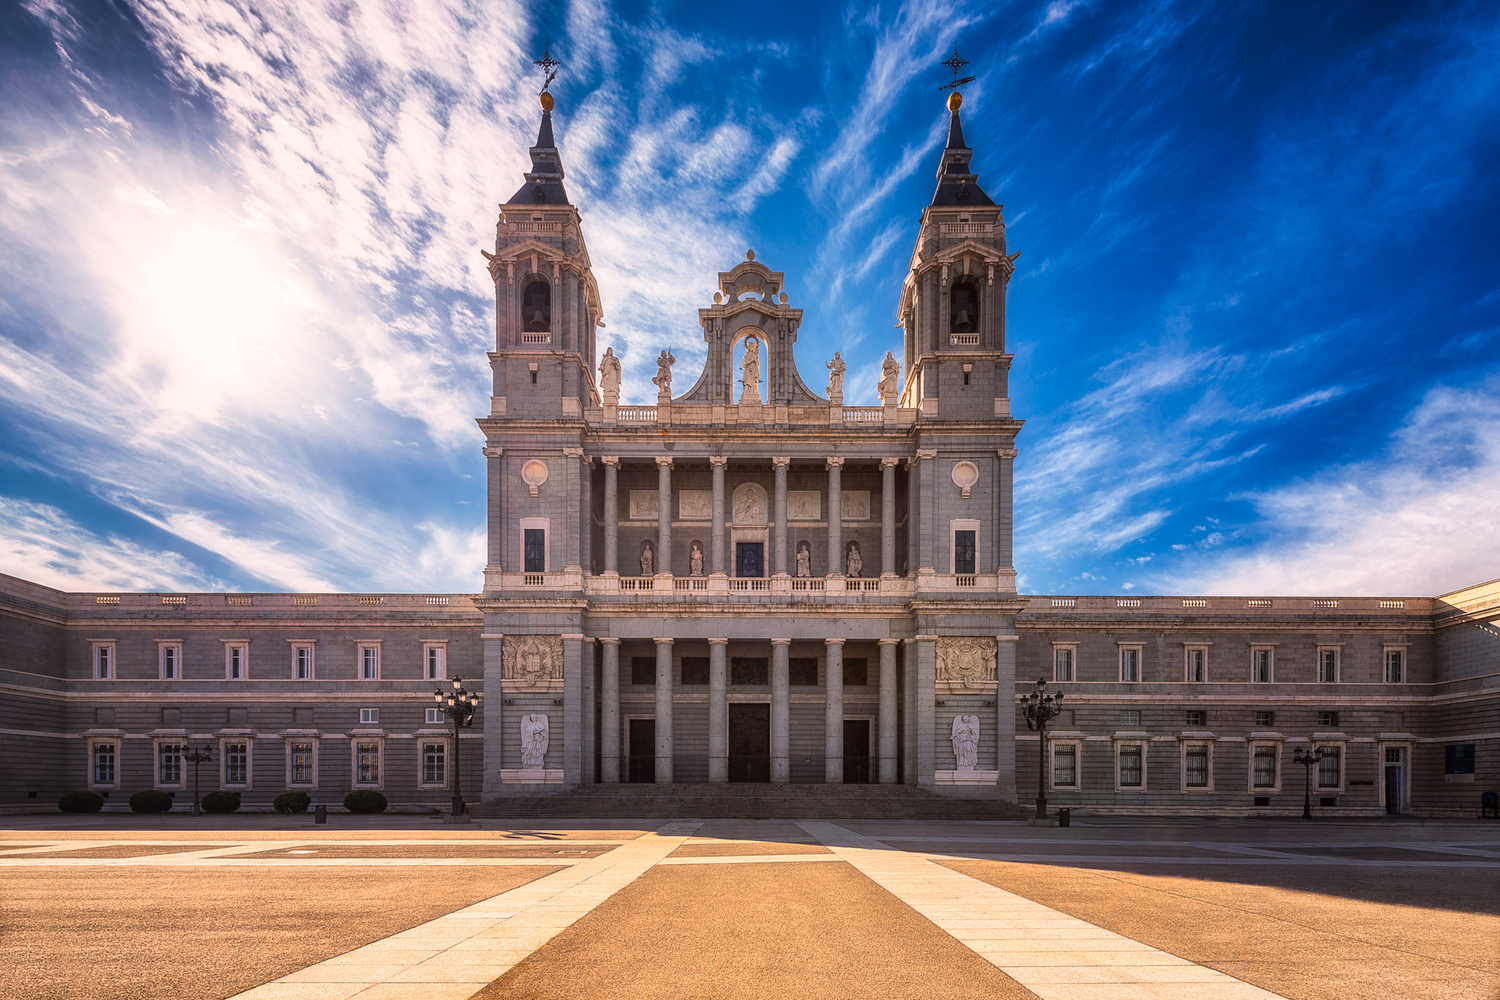 Almudena Cathedral | Madrid, Spain by Nico Trinkhaus